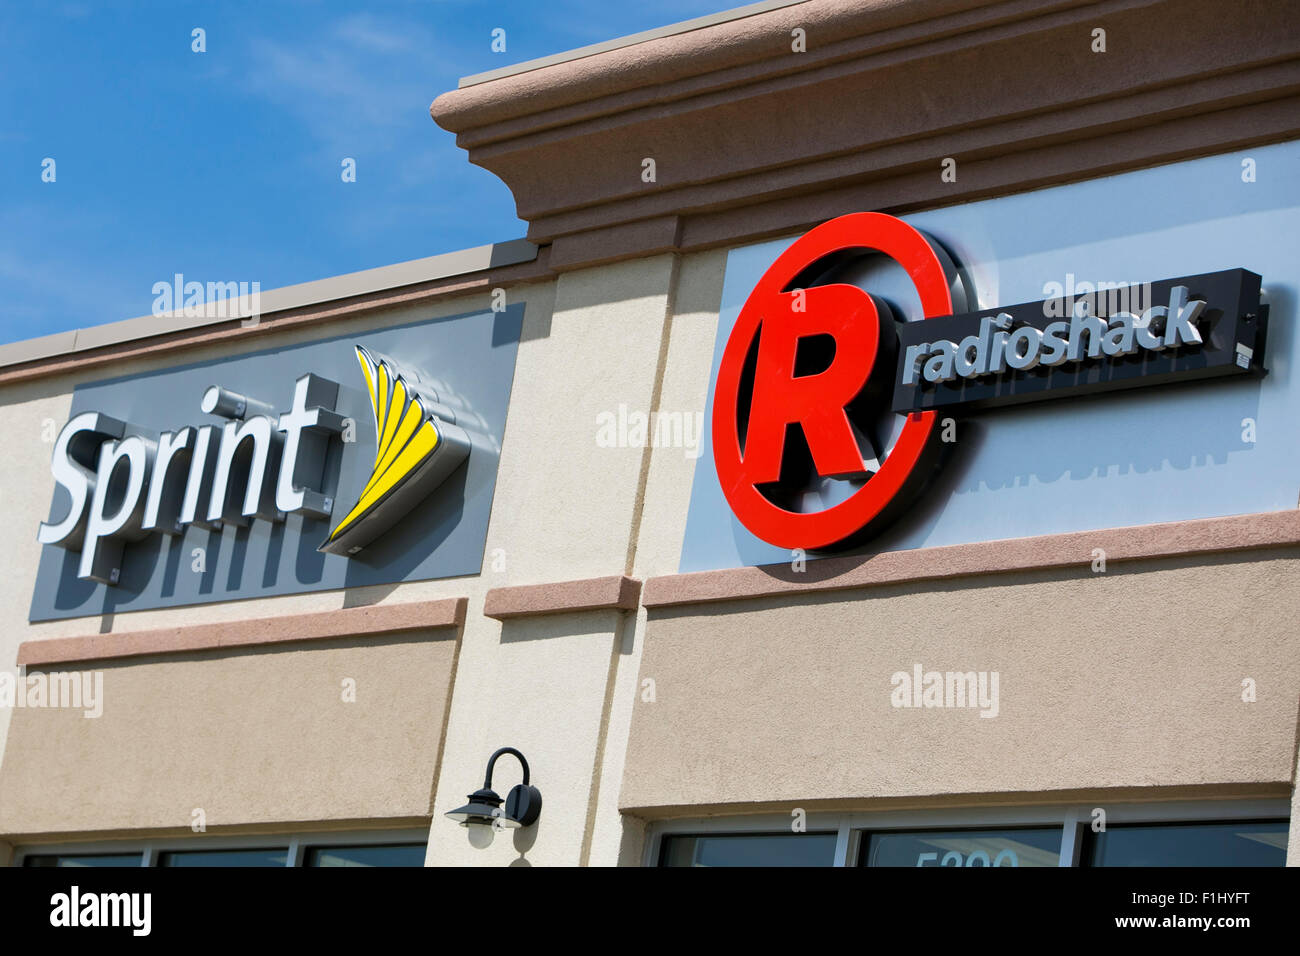 Sprint logo stock photos sprint logo stock images alamy a logo sign outside of a joint sprint and radioshack store in kansas city kansas biocorpaavc Image collections